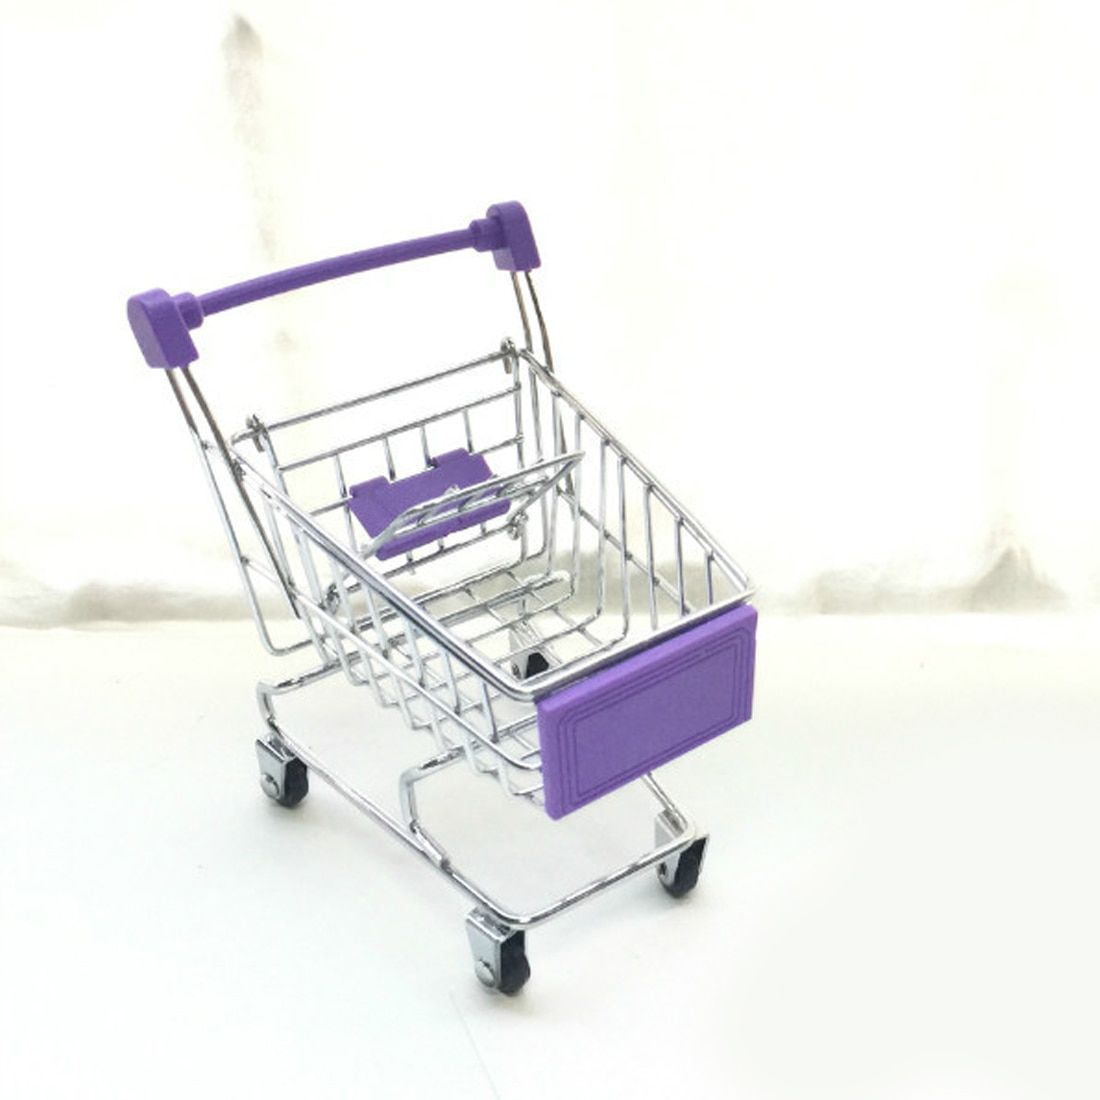 New Mini Supermarket Handcart Trolley Shopping Utility Cart Phone Holder Office Desk Storage Toy Cart Baby Toy